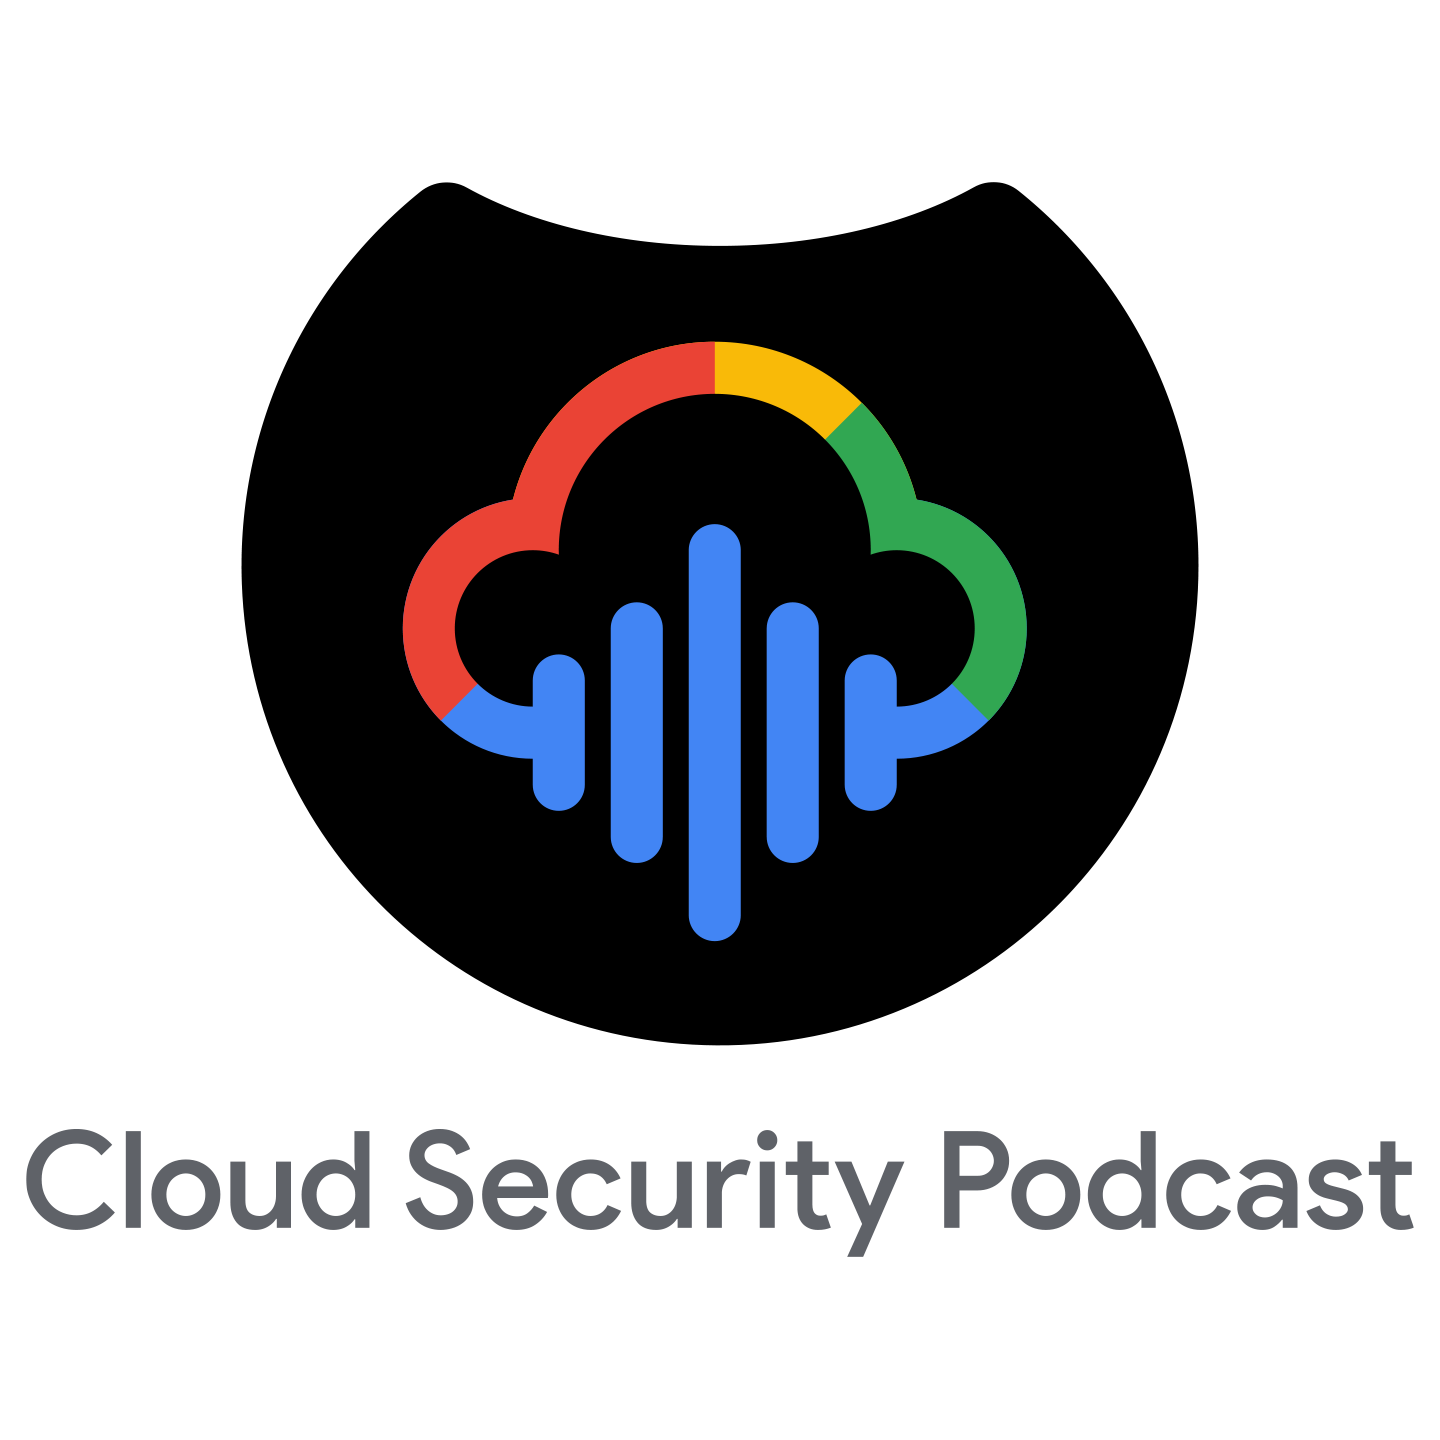 Cloud Security Podcast by Google show art